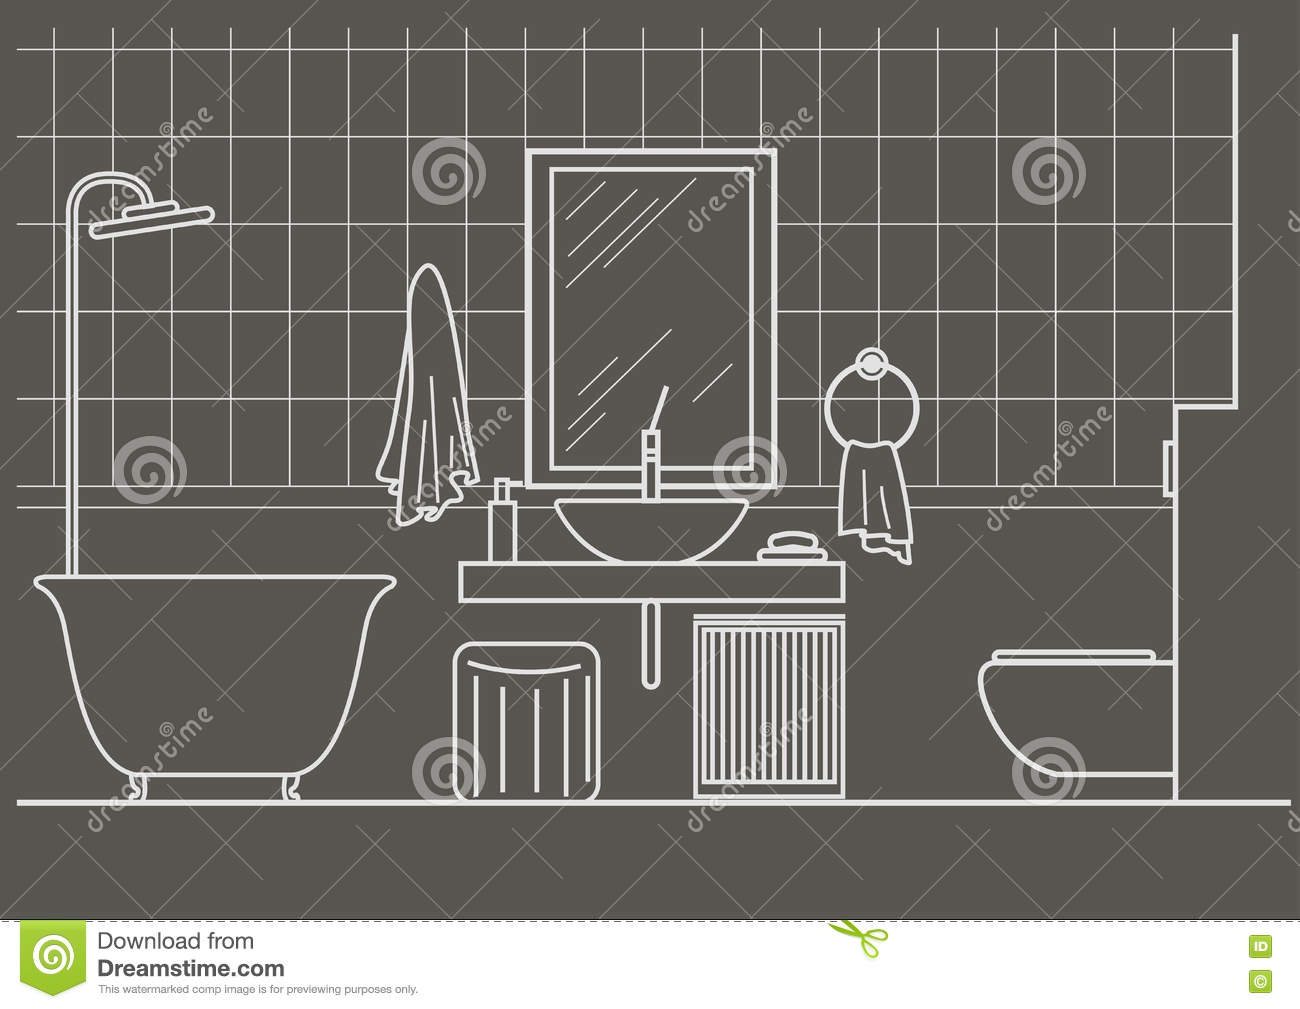 Architectural Sketch Bathroom Interior Front View Stock